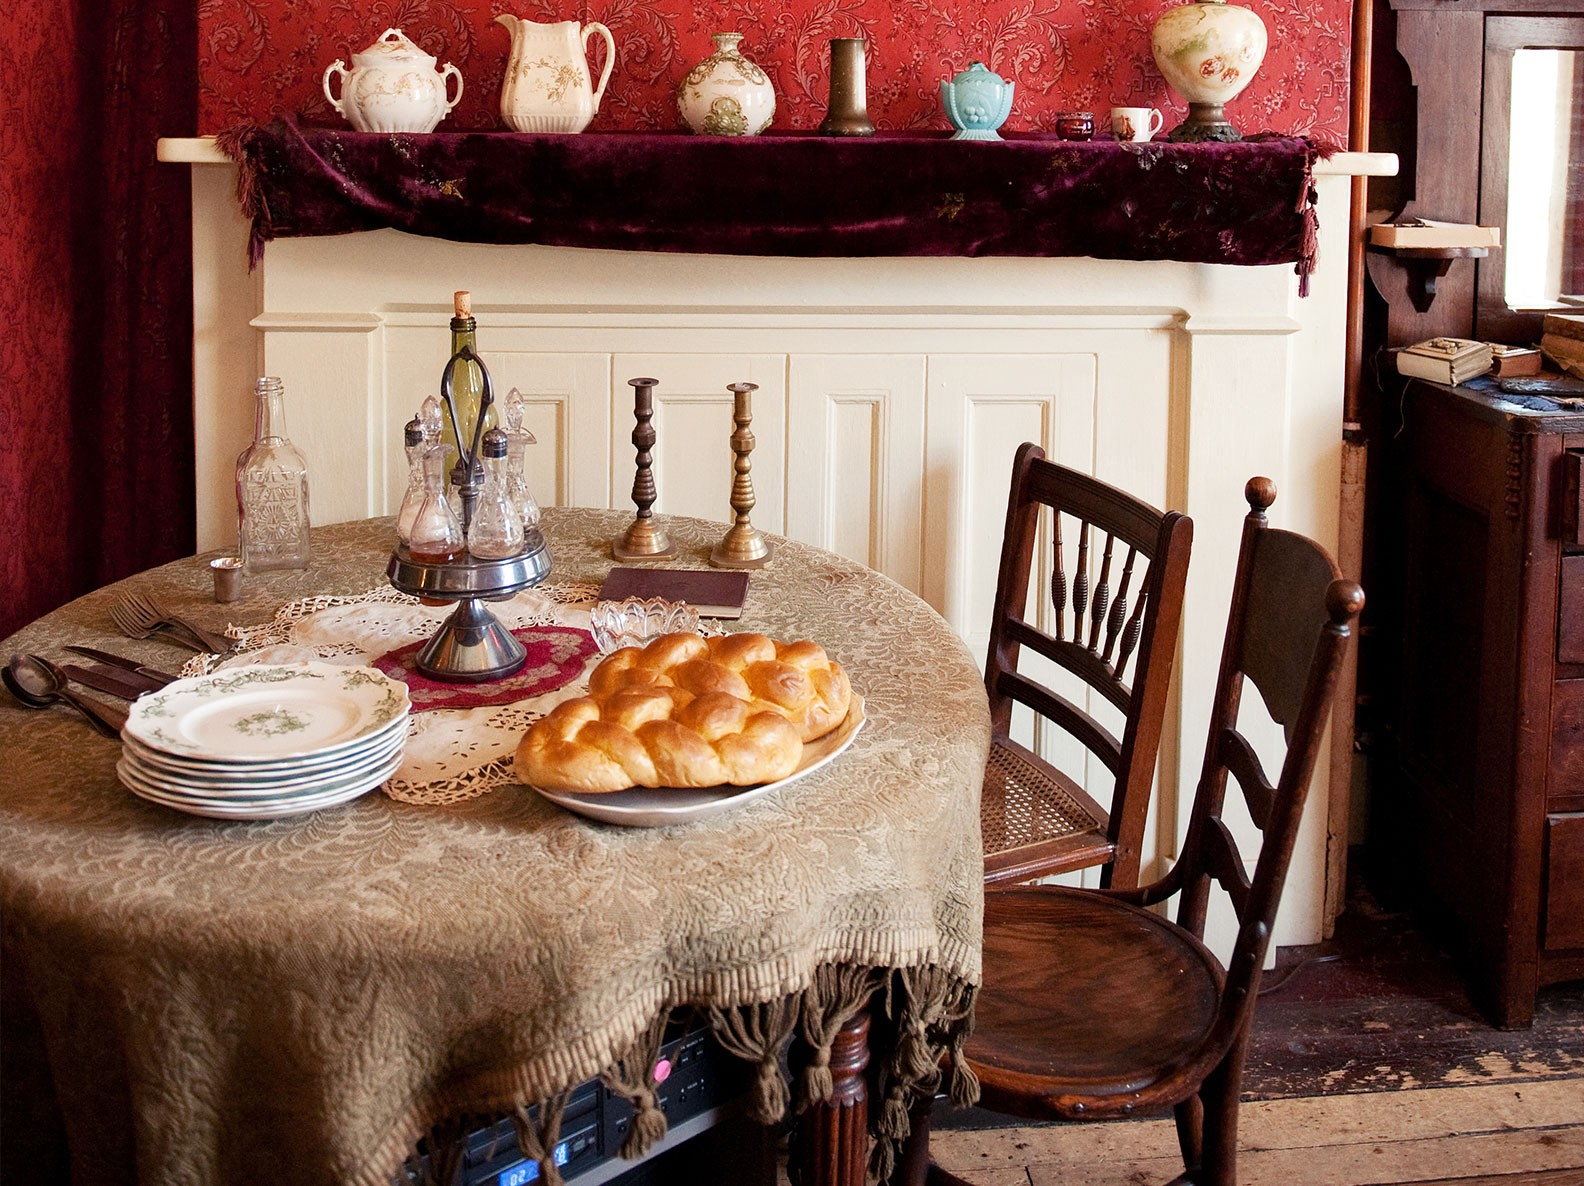 Table set for Sabbath dinner inside the recreated Rogarshevsky parlor